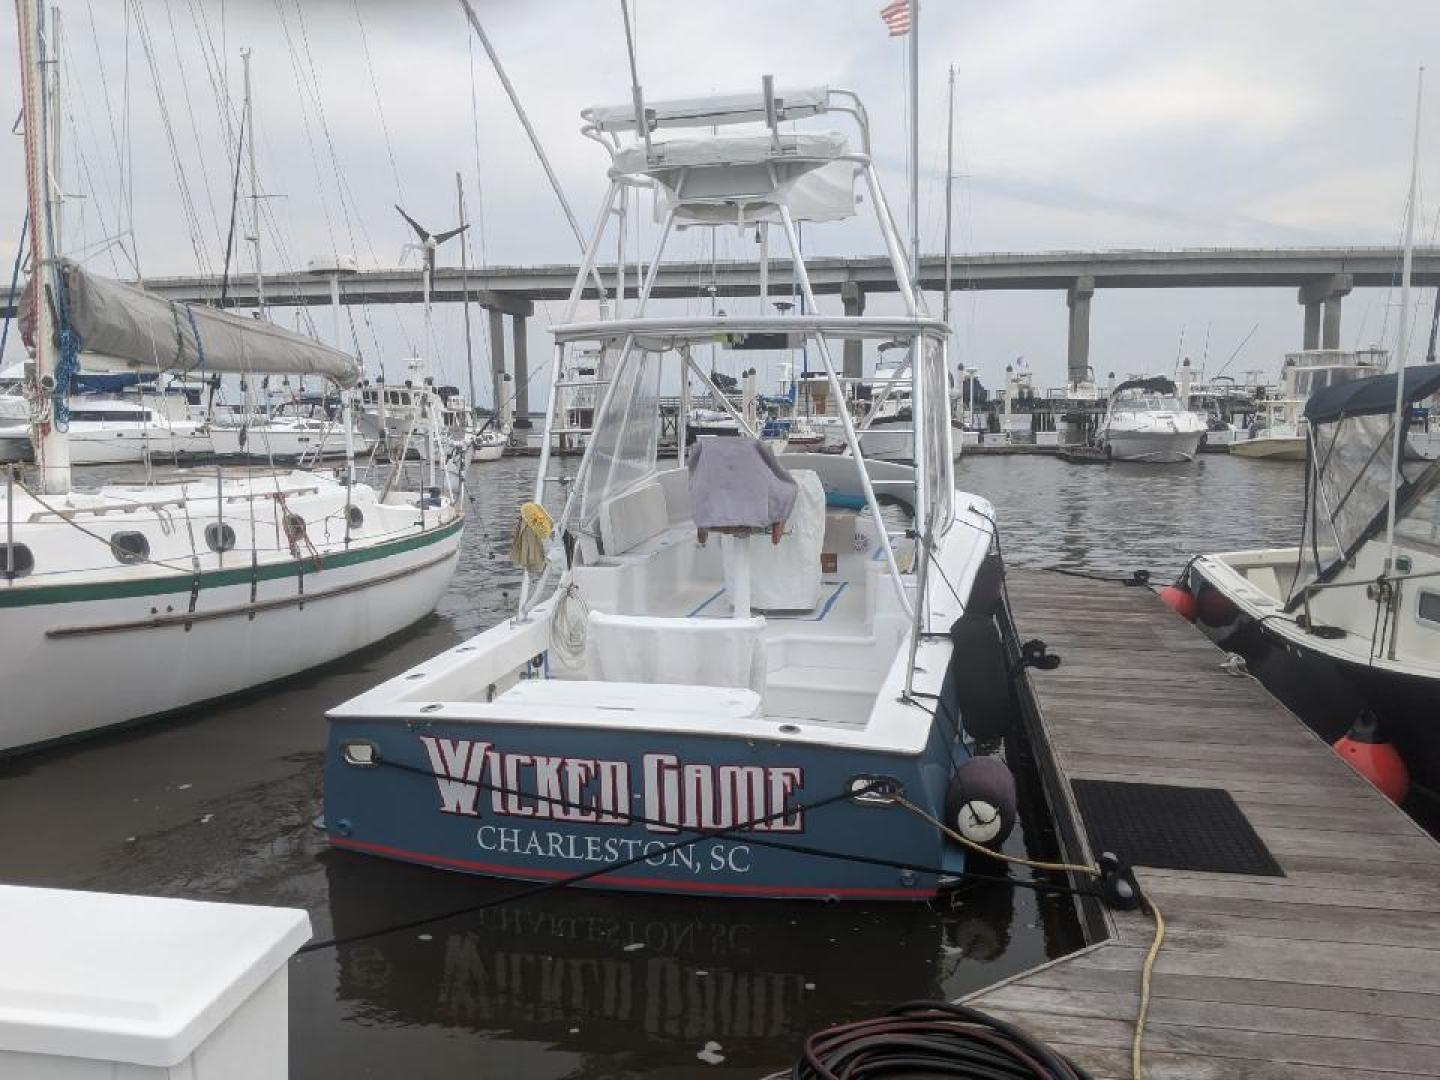 Shearline-31 Center Console Sportfish Express 2002-Wicked Game Isle of Palms-South Carolina-United States-1512790 | Thumbnail